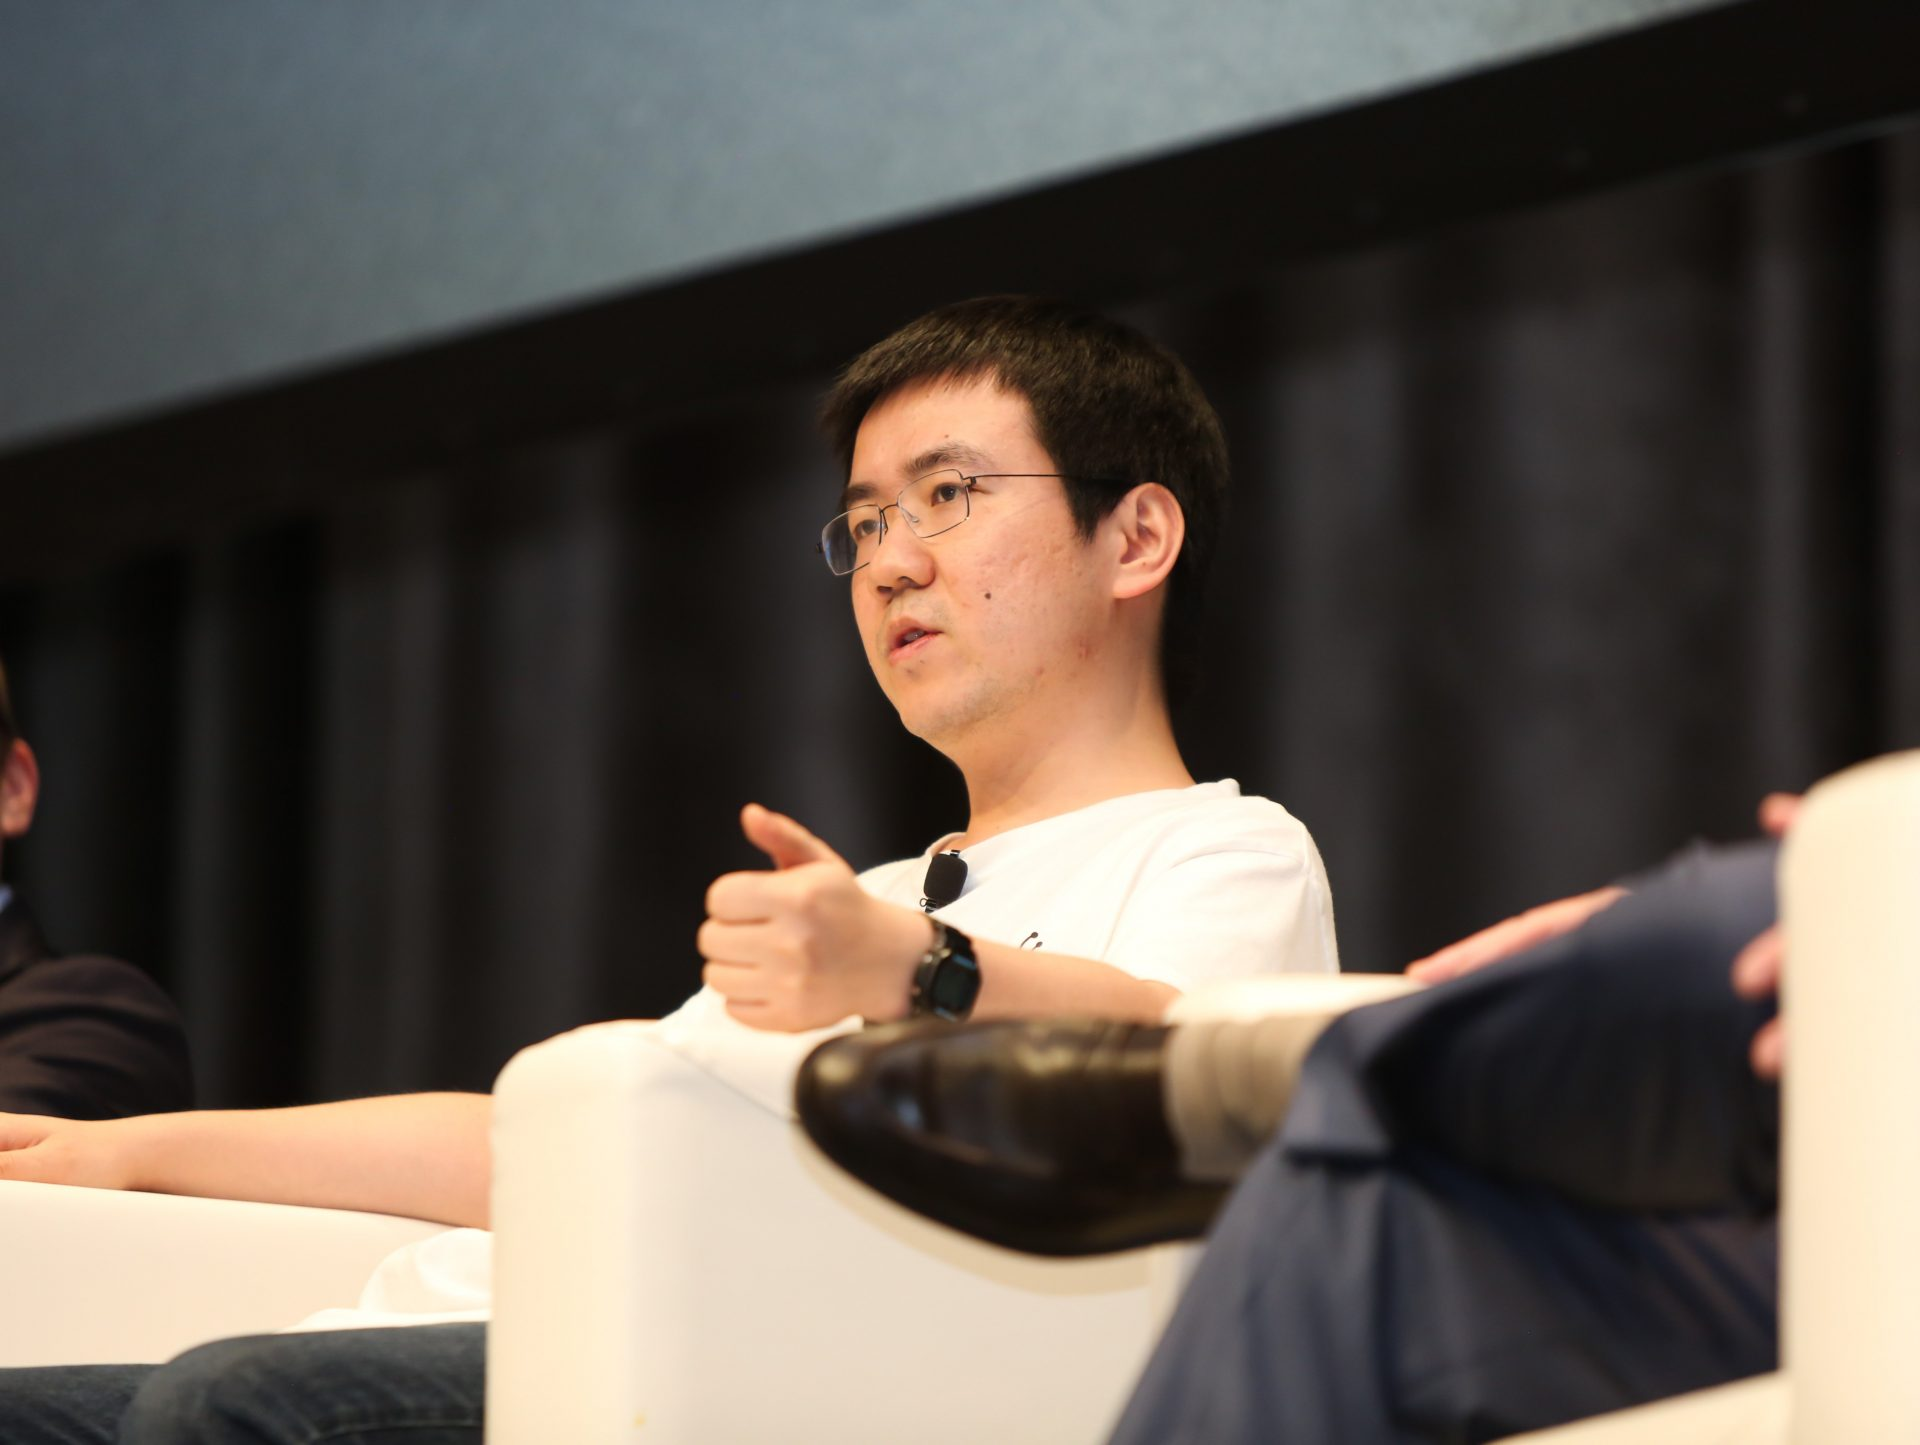 Bitmain Is Going Public, But What Type of Investment Is It Anyway?